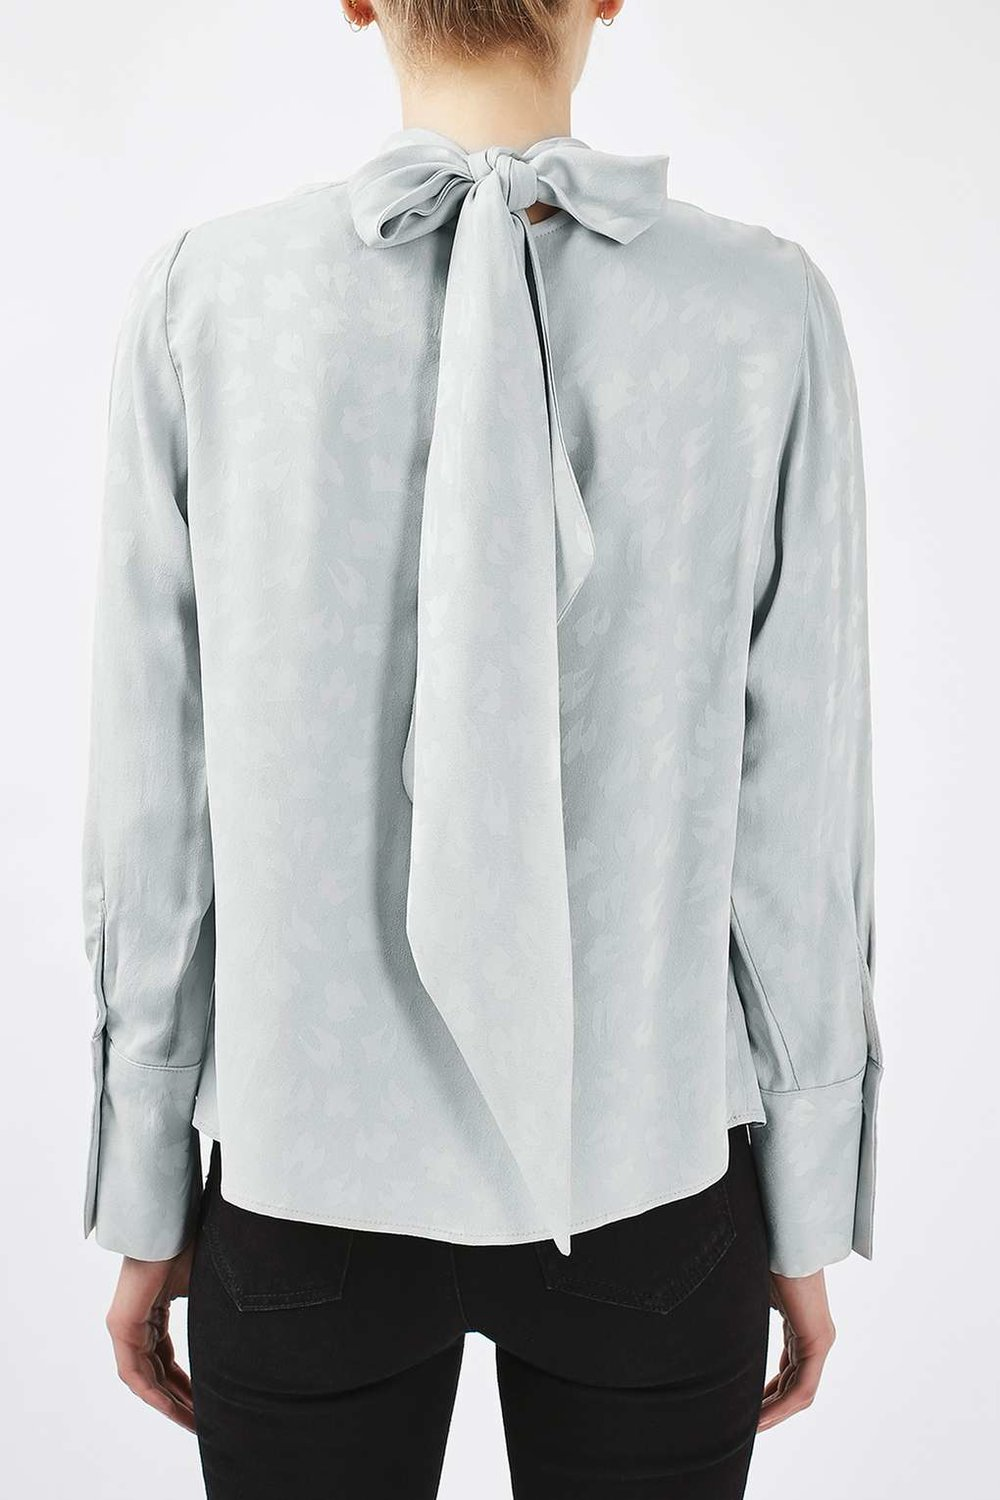 Jacquard Tie Blouse by Boutique, Topshop, $110 at Topshop.com